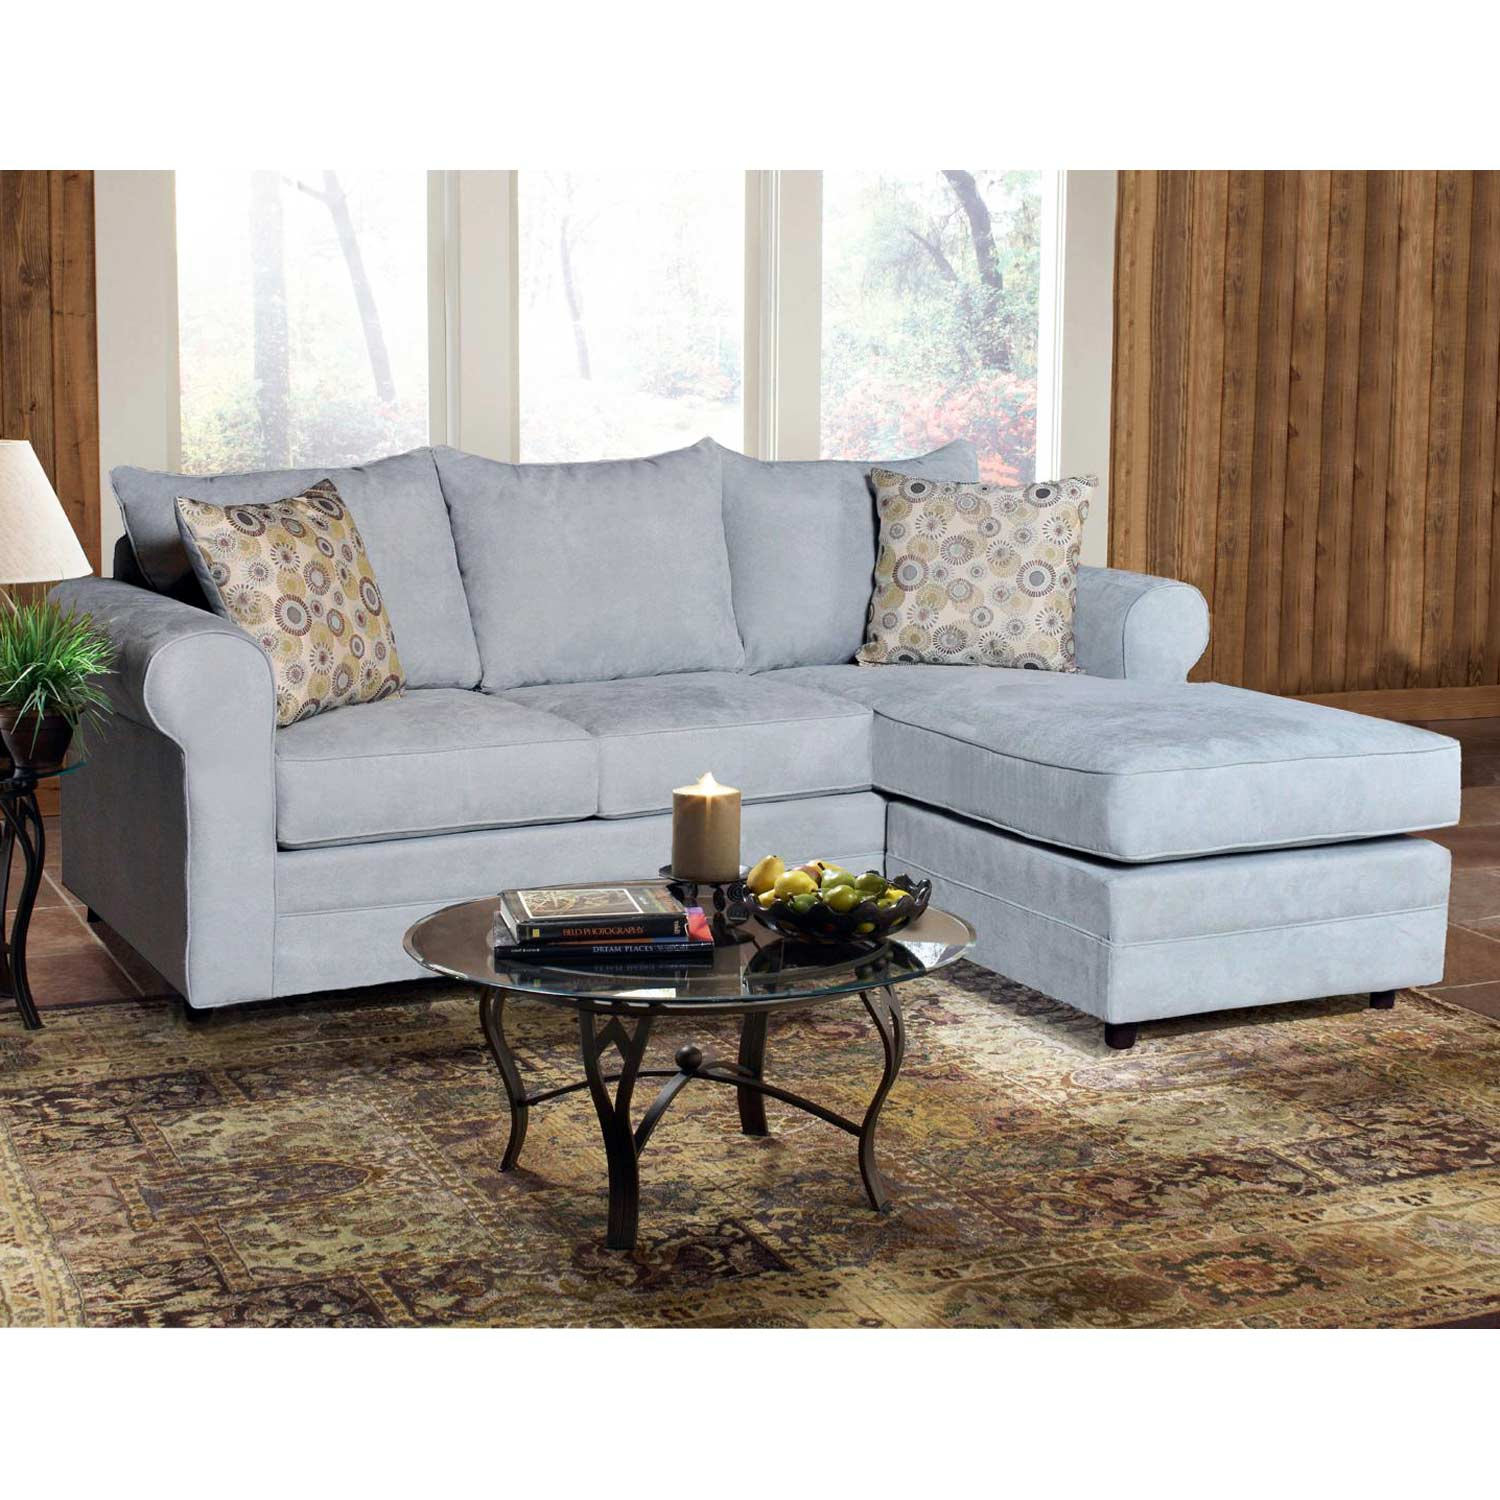 Anita Pillow Back Sofa & Ottoman - Chaise Cushion, Blitz Capri Fabric